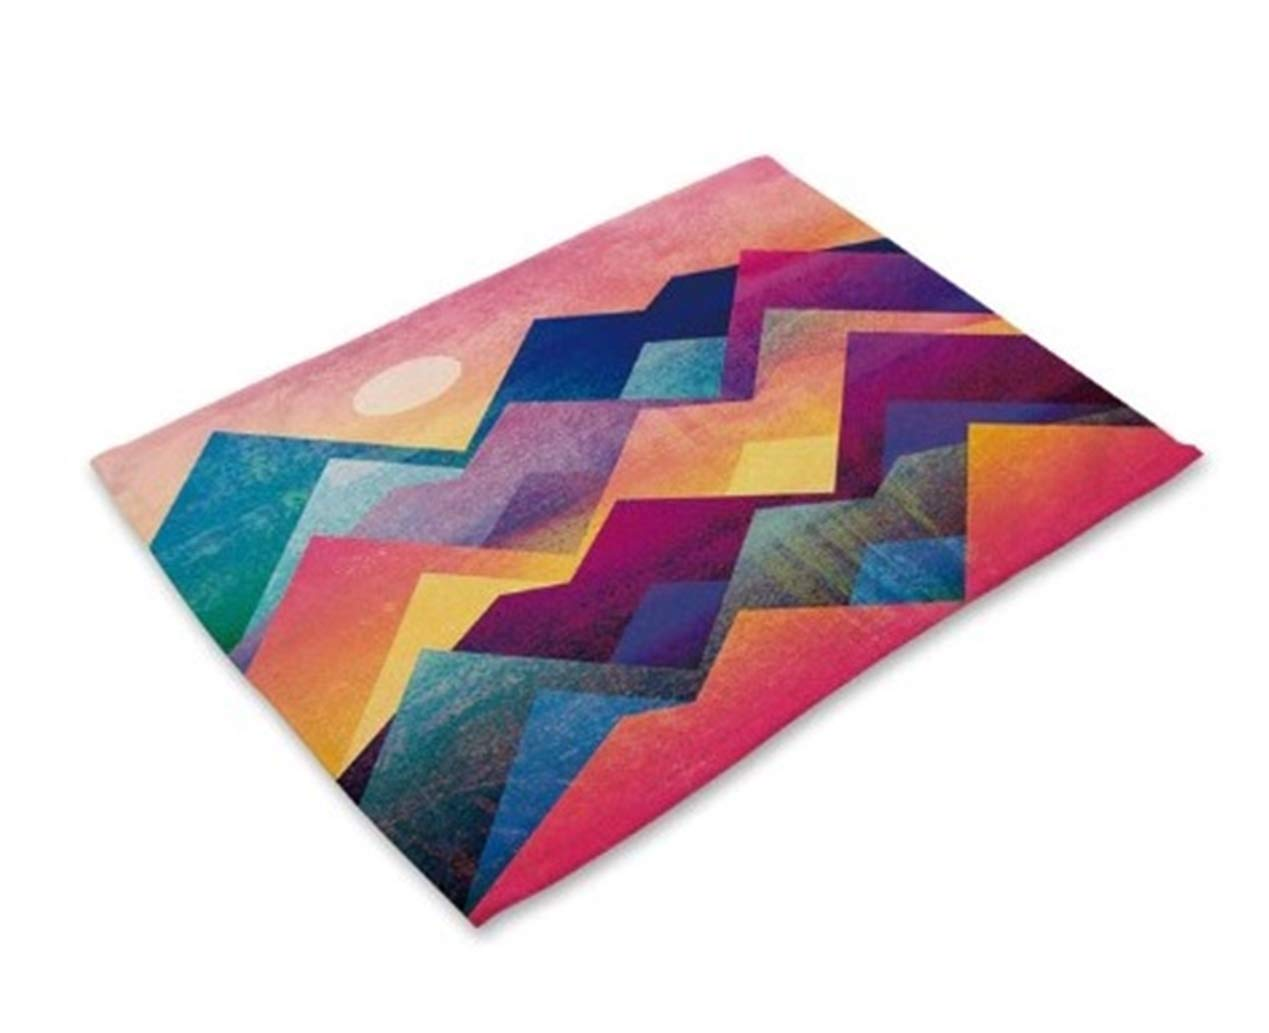 1 Pc Mountain Colorful Cotton Linen Placemat Howling Popular Place Mat Dining Table Set Non Slip Toddlers Learning Food Plate Washable Cloth Cover Tool Holiday Decor